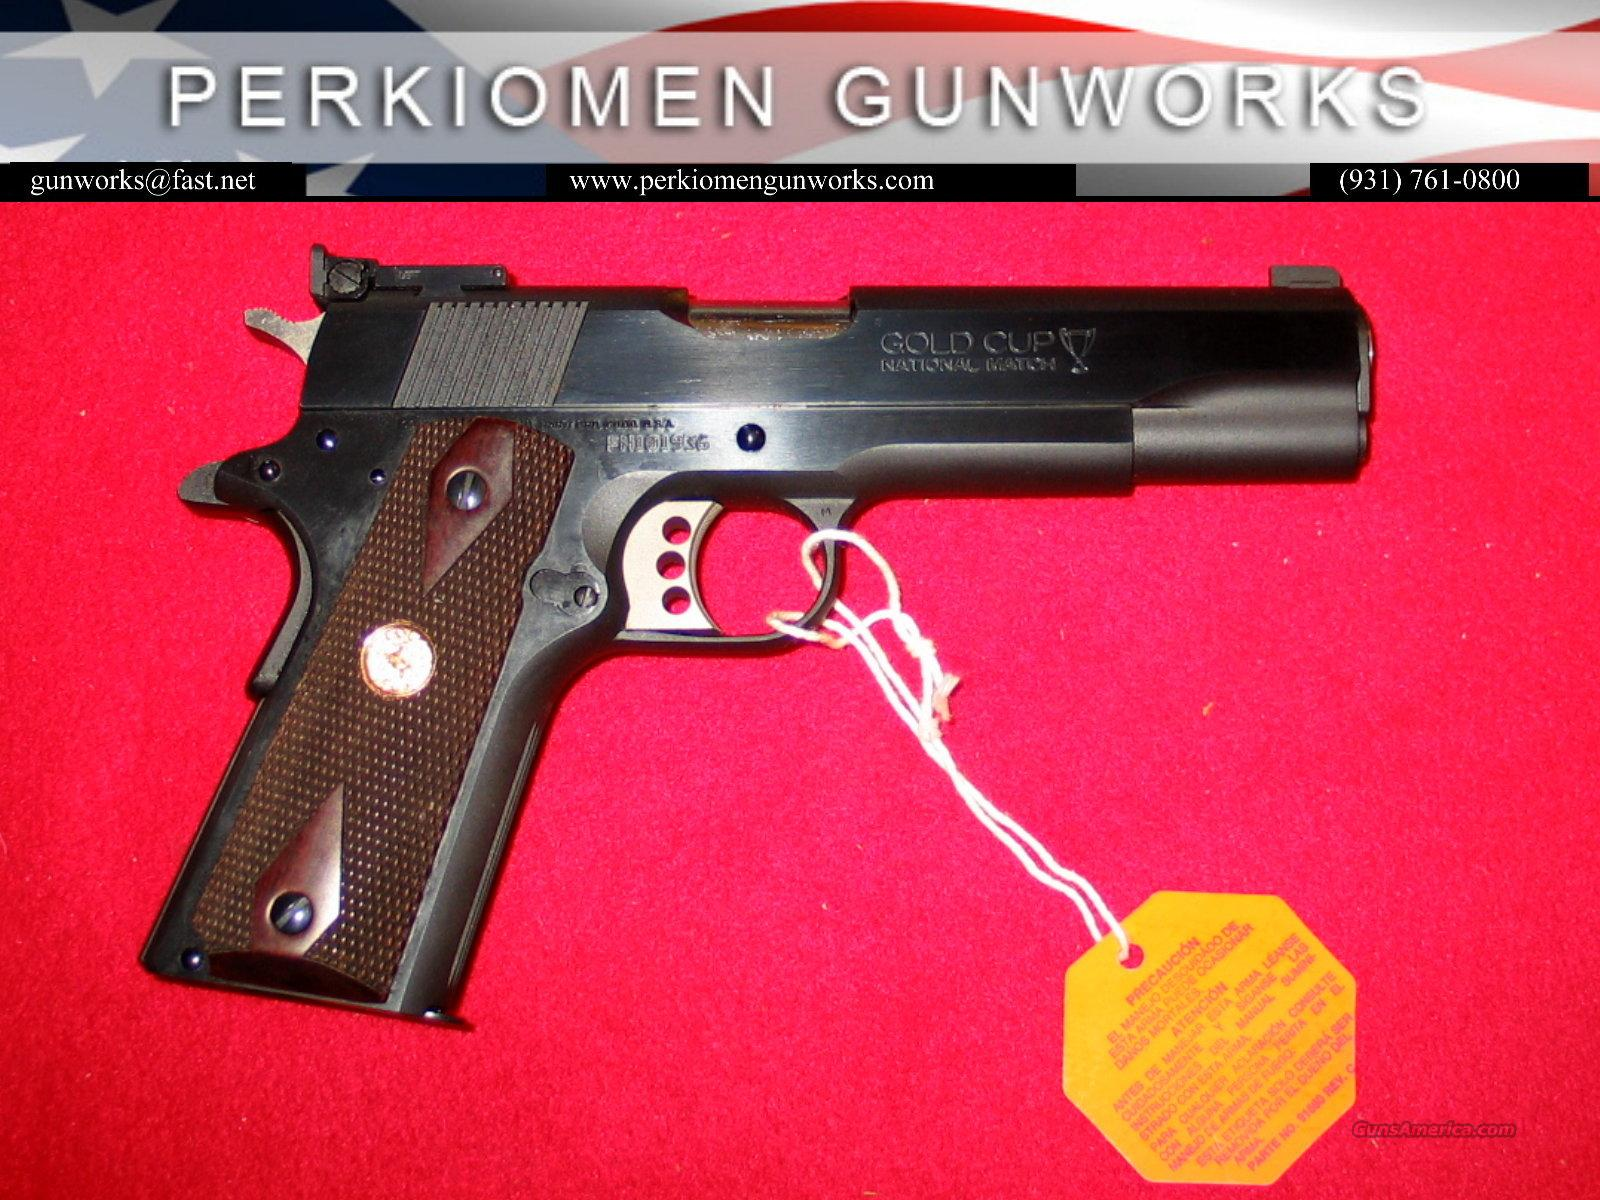 Gold Cup National Match, 45acp, O5870NM, New in Box  Guns > Pistols > Colt Automatic Pistols (1911 & Var)